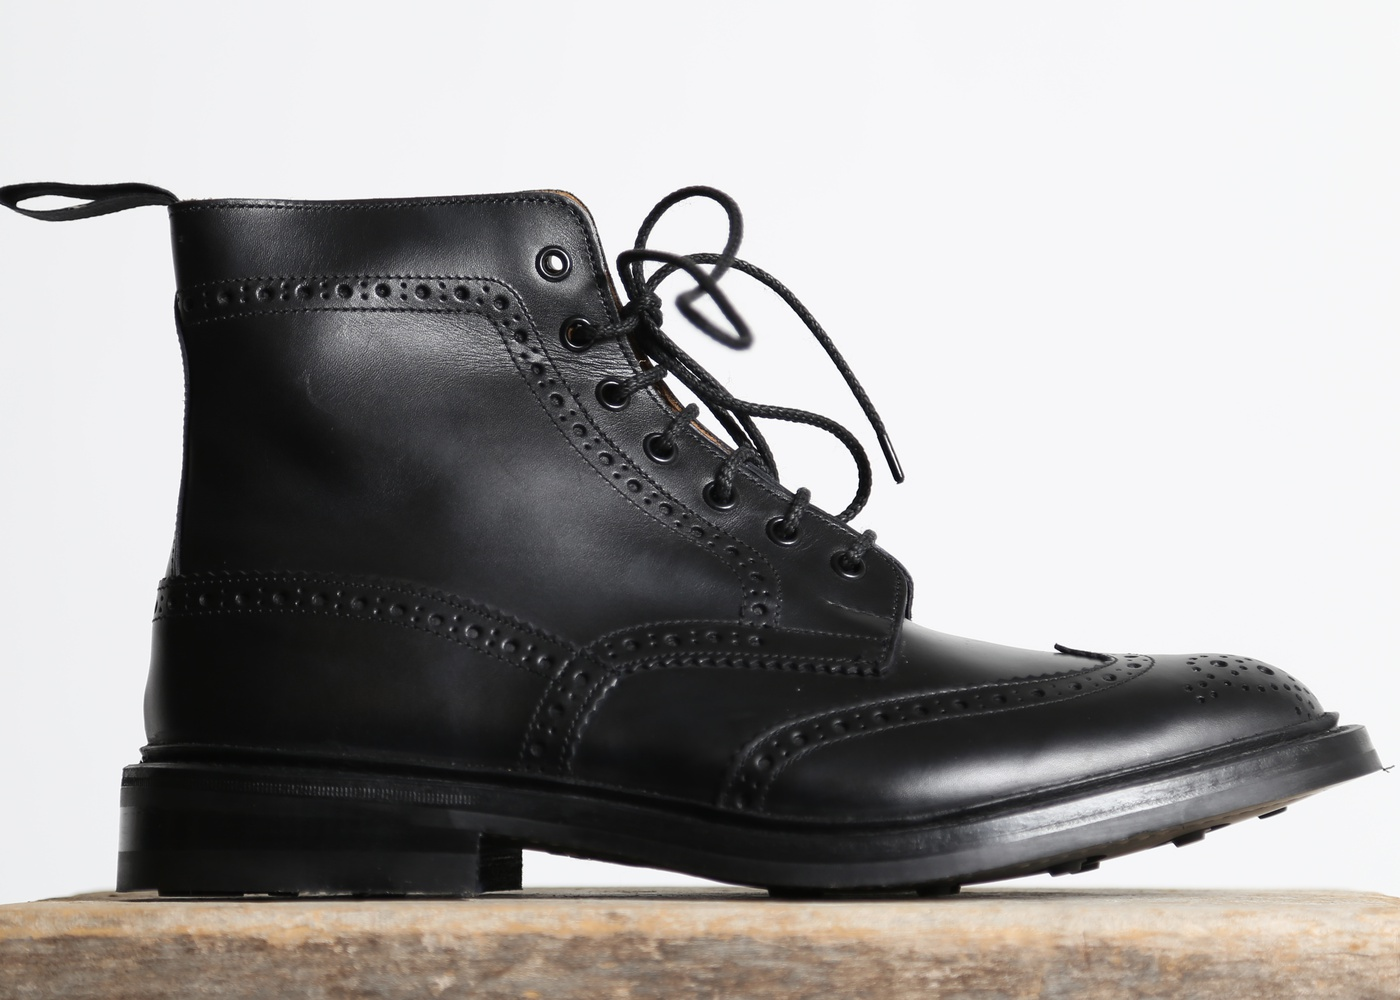 Men's Trickers Black Calf Stow With Dainite Sole nyc